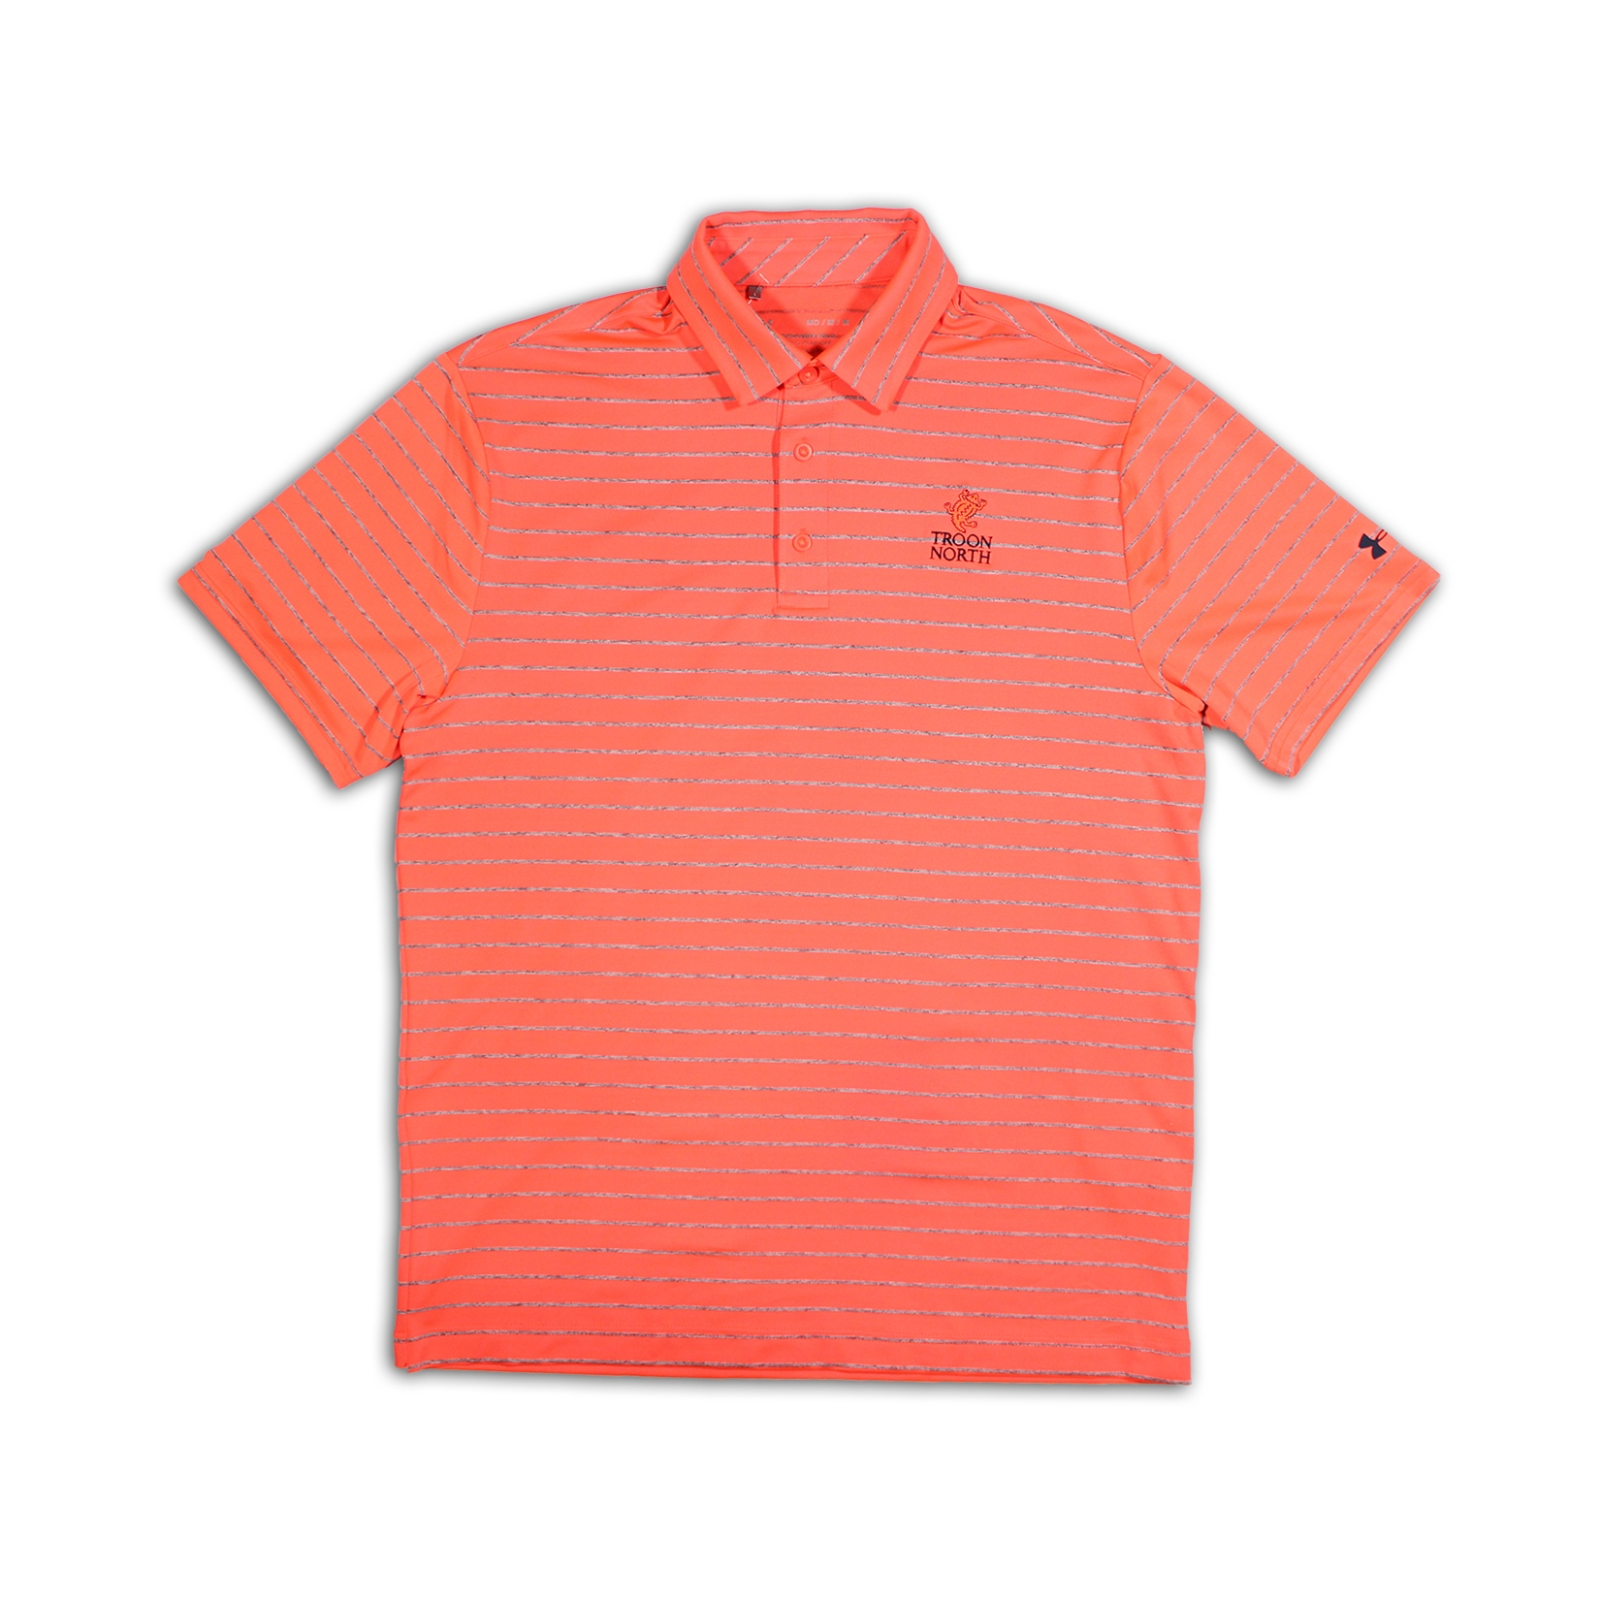 Under Armour Tour Stripe Dark Orange & Gray Polo